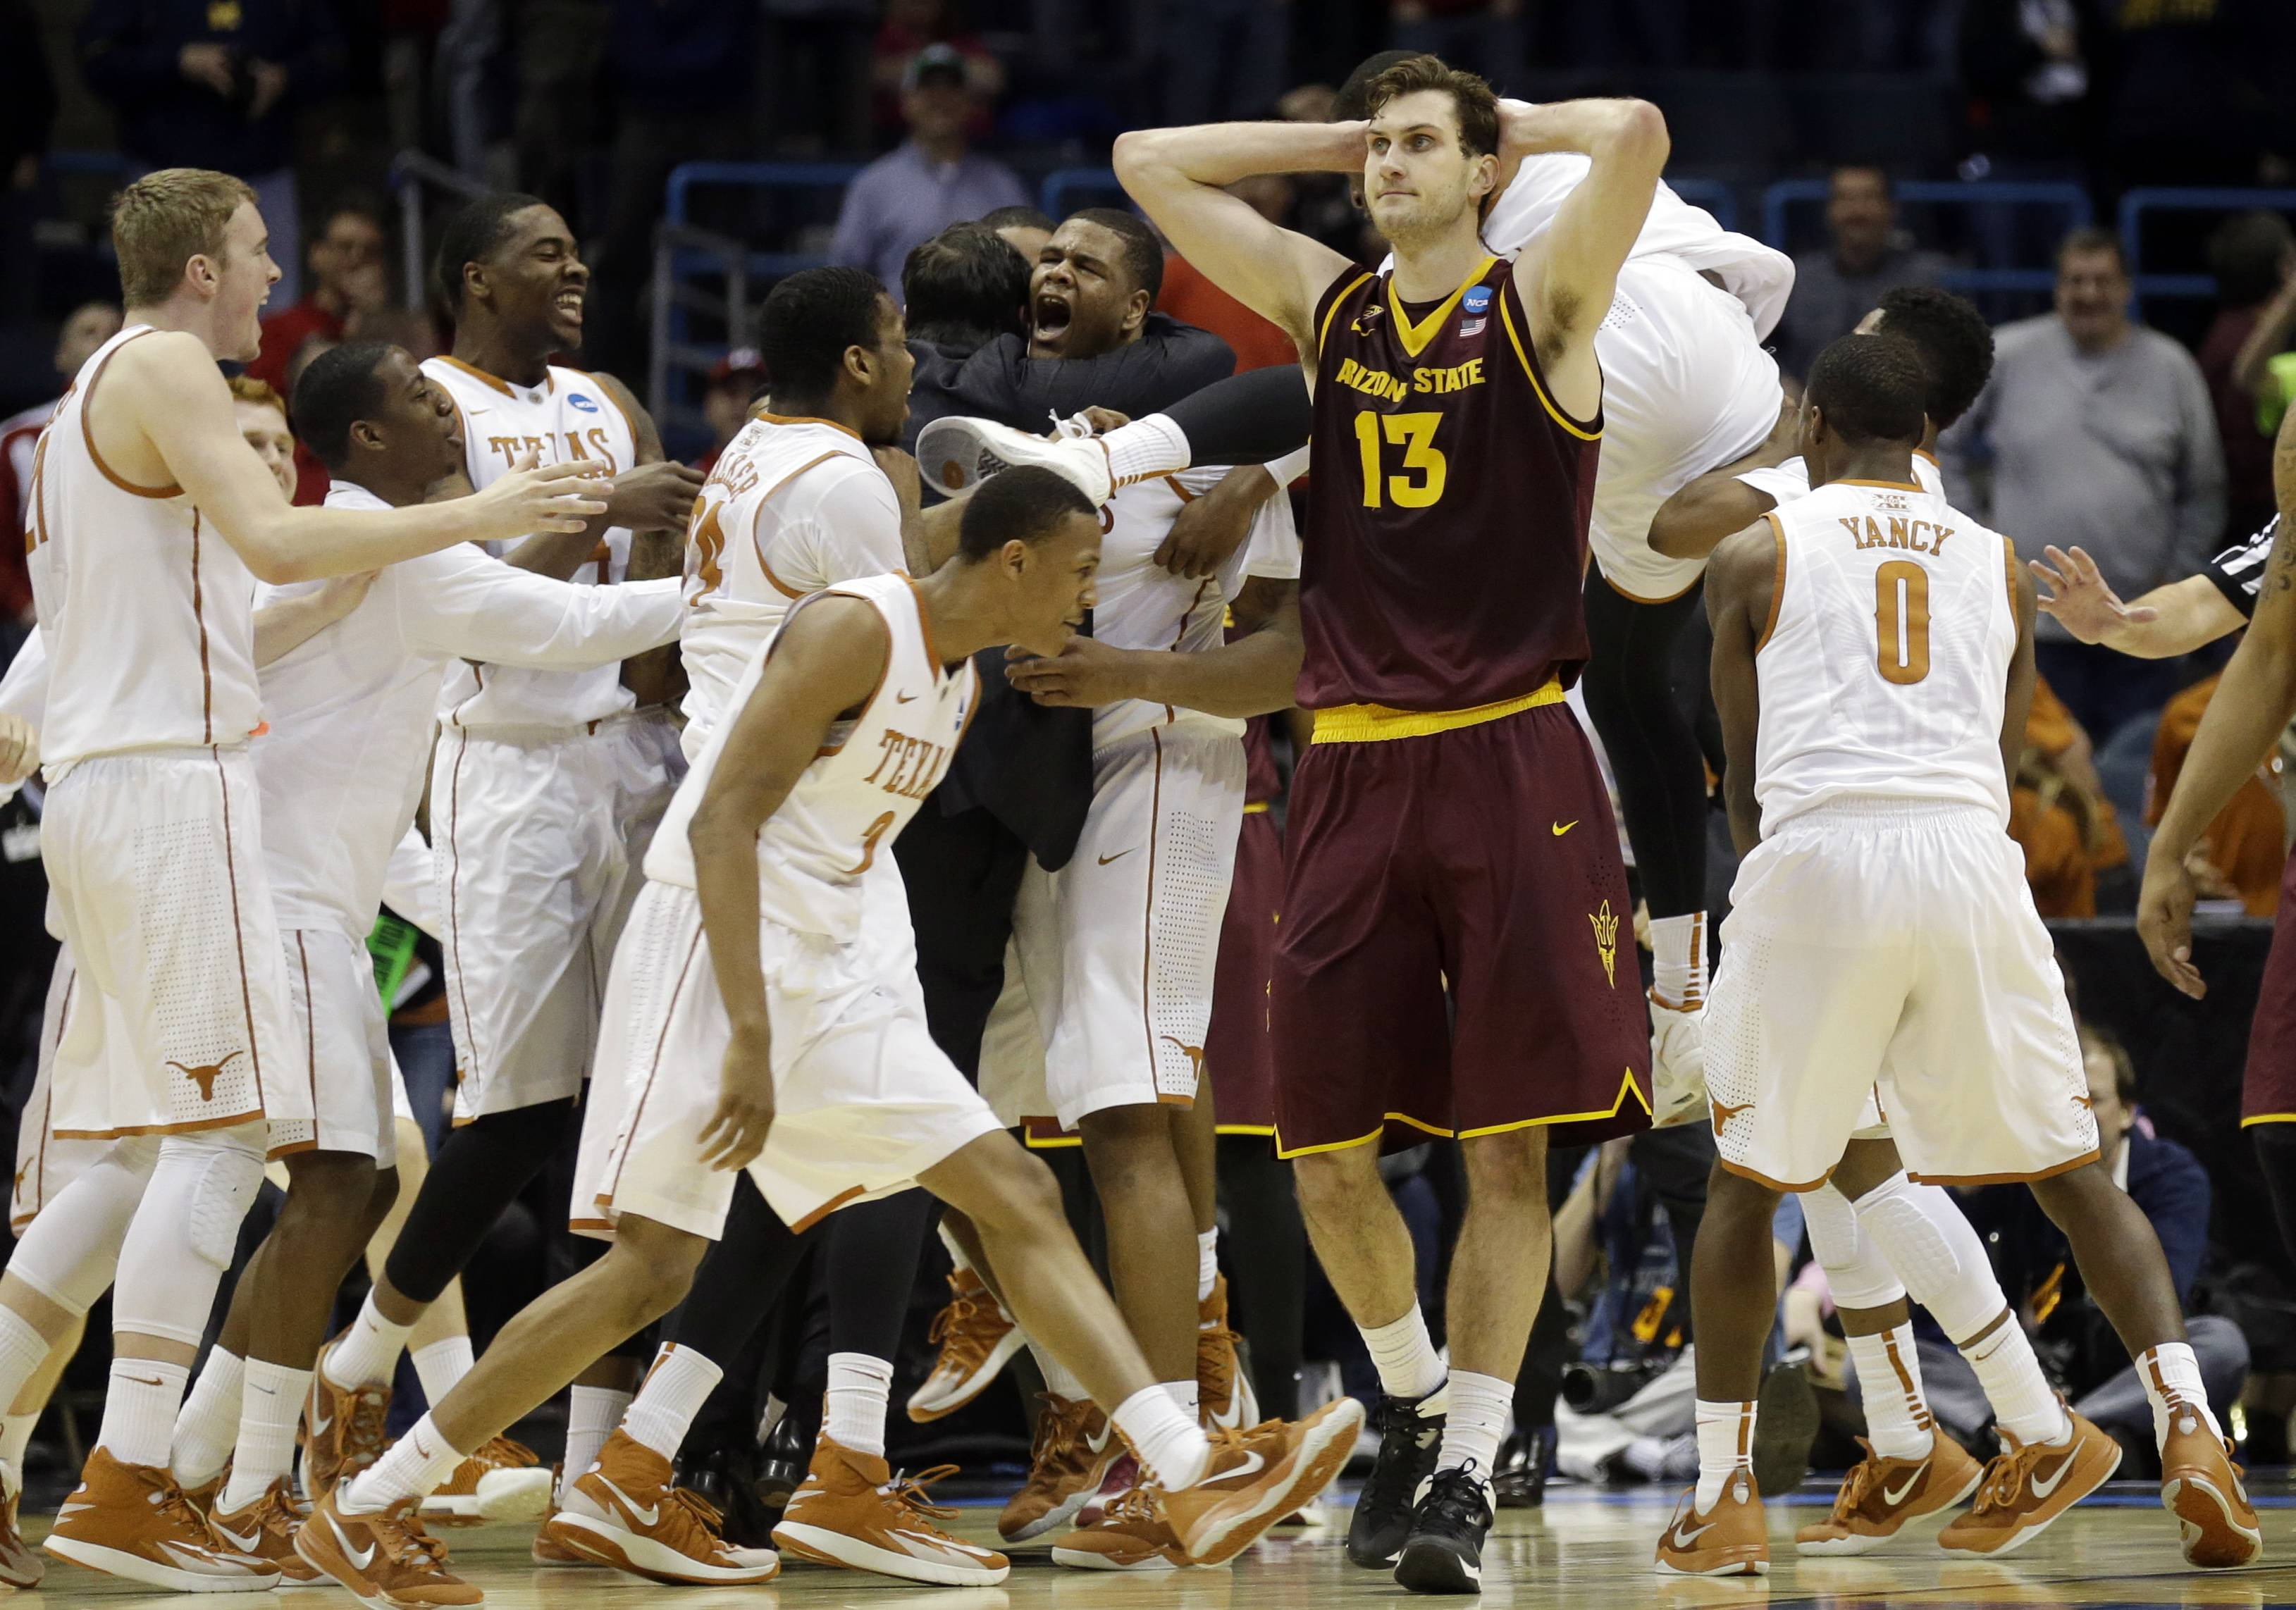 Texas players celebrates Cameron Ridley's game winning shot as Arizona State center Jordan Bachynski (13) walks off after a second-round game in the NCAA college basketball tournament Thursday, March 20, 2014, in Milwaukee. Texas won 87-85.